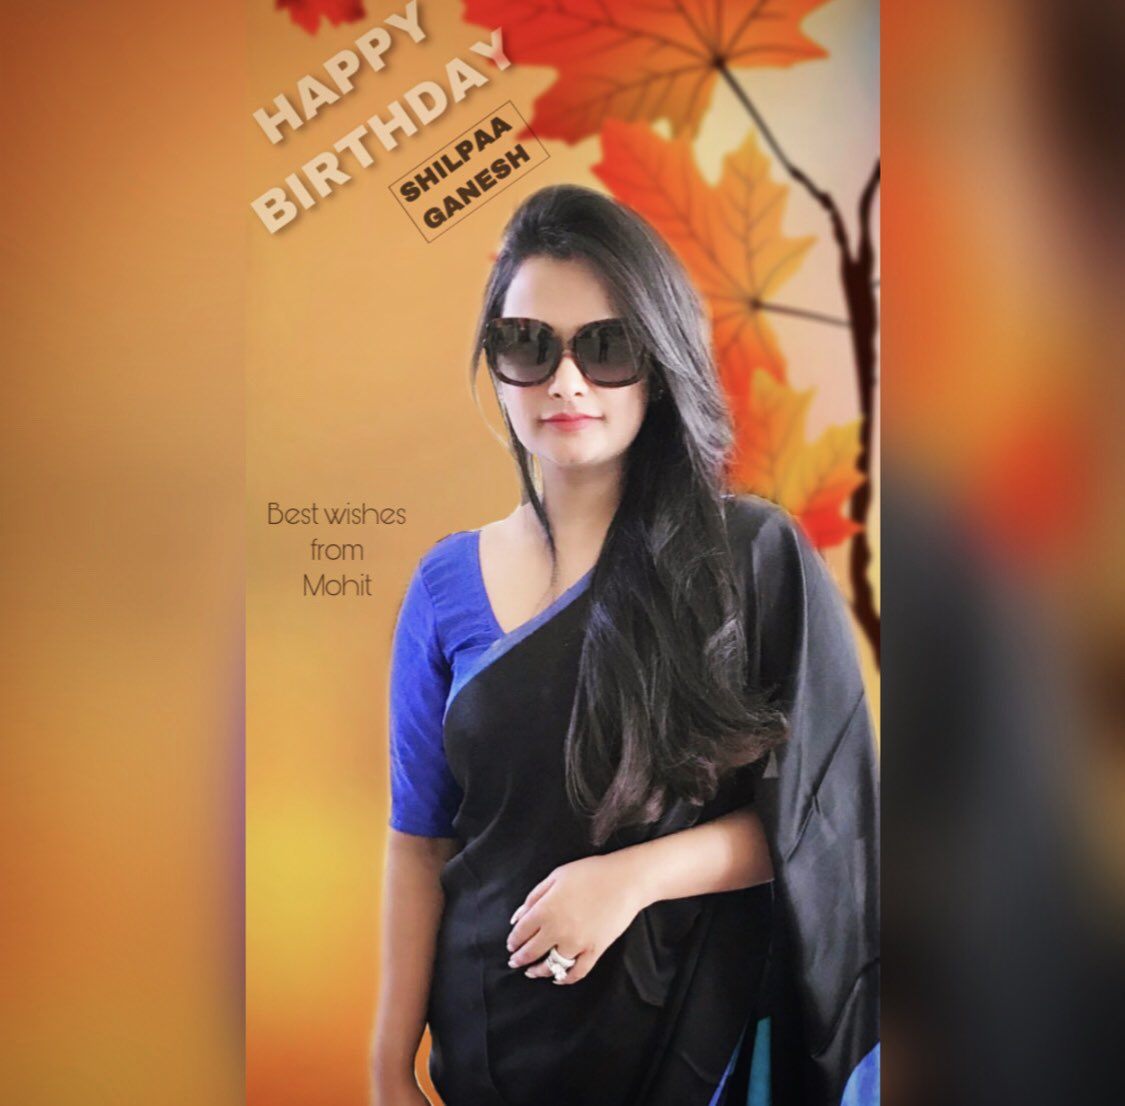 Happy Birthday @ShilpaaGanesh mam  wishing you a magical birthday filled with wonderful surprises@Official_Ganeshpic.twitter.com/bn0YA0o2xT